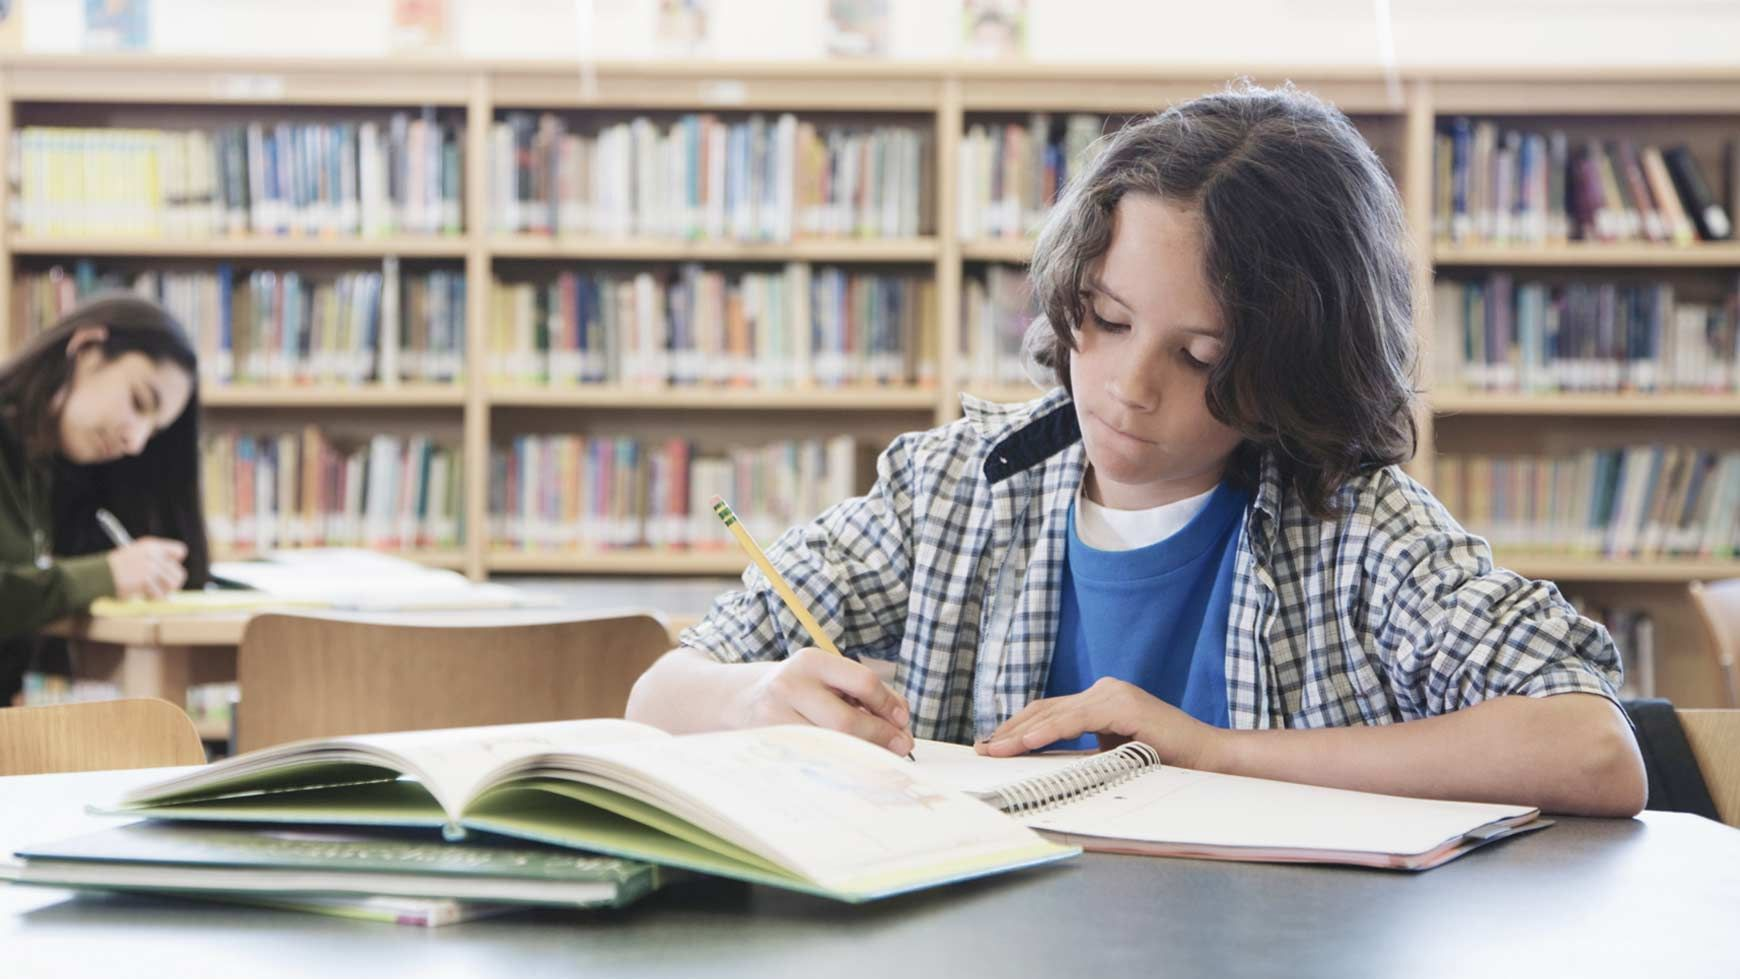 Skills Kids Need Going Into Middle School